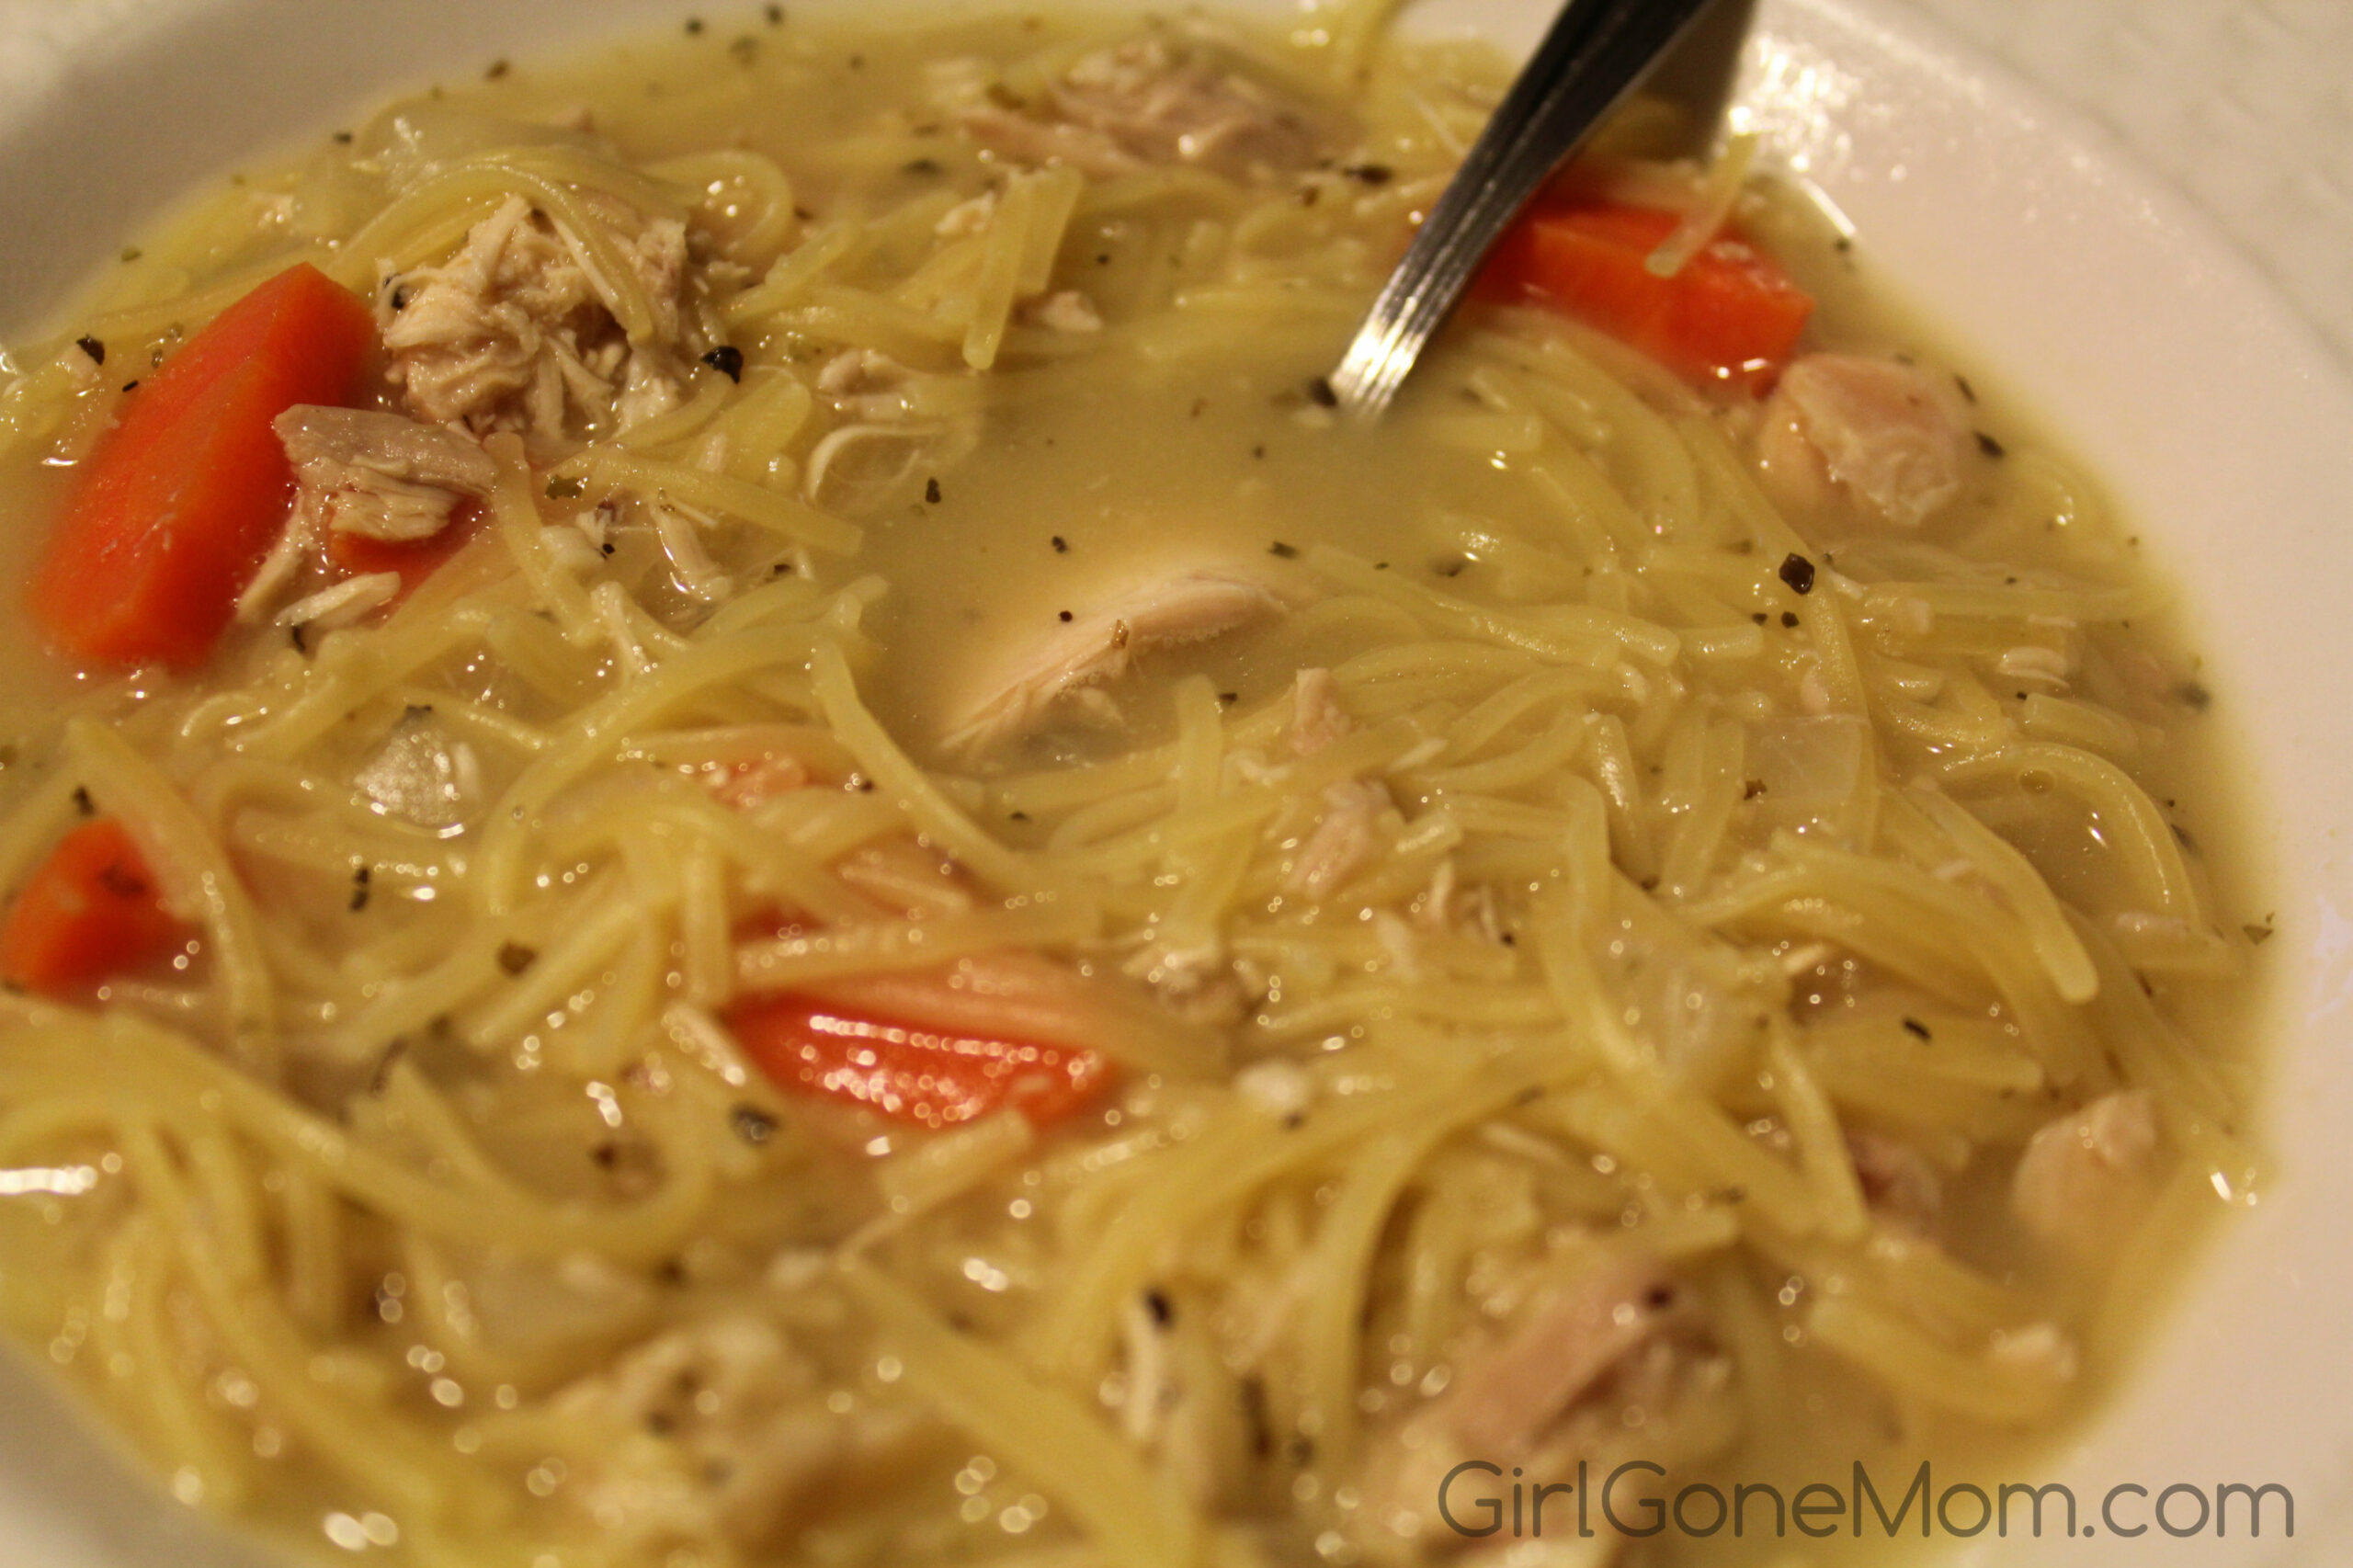 Leftover Rotisserie Chicken Noodle Soup Recipe - Girl Gone Mom - recipes to make with rotisserie chicken